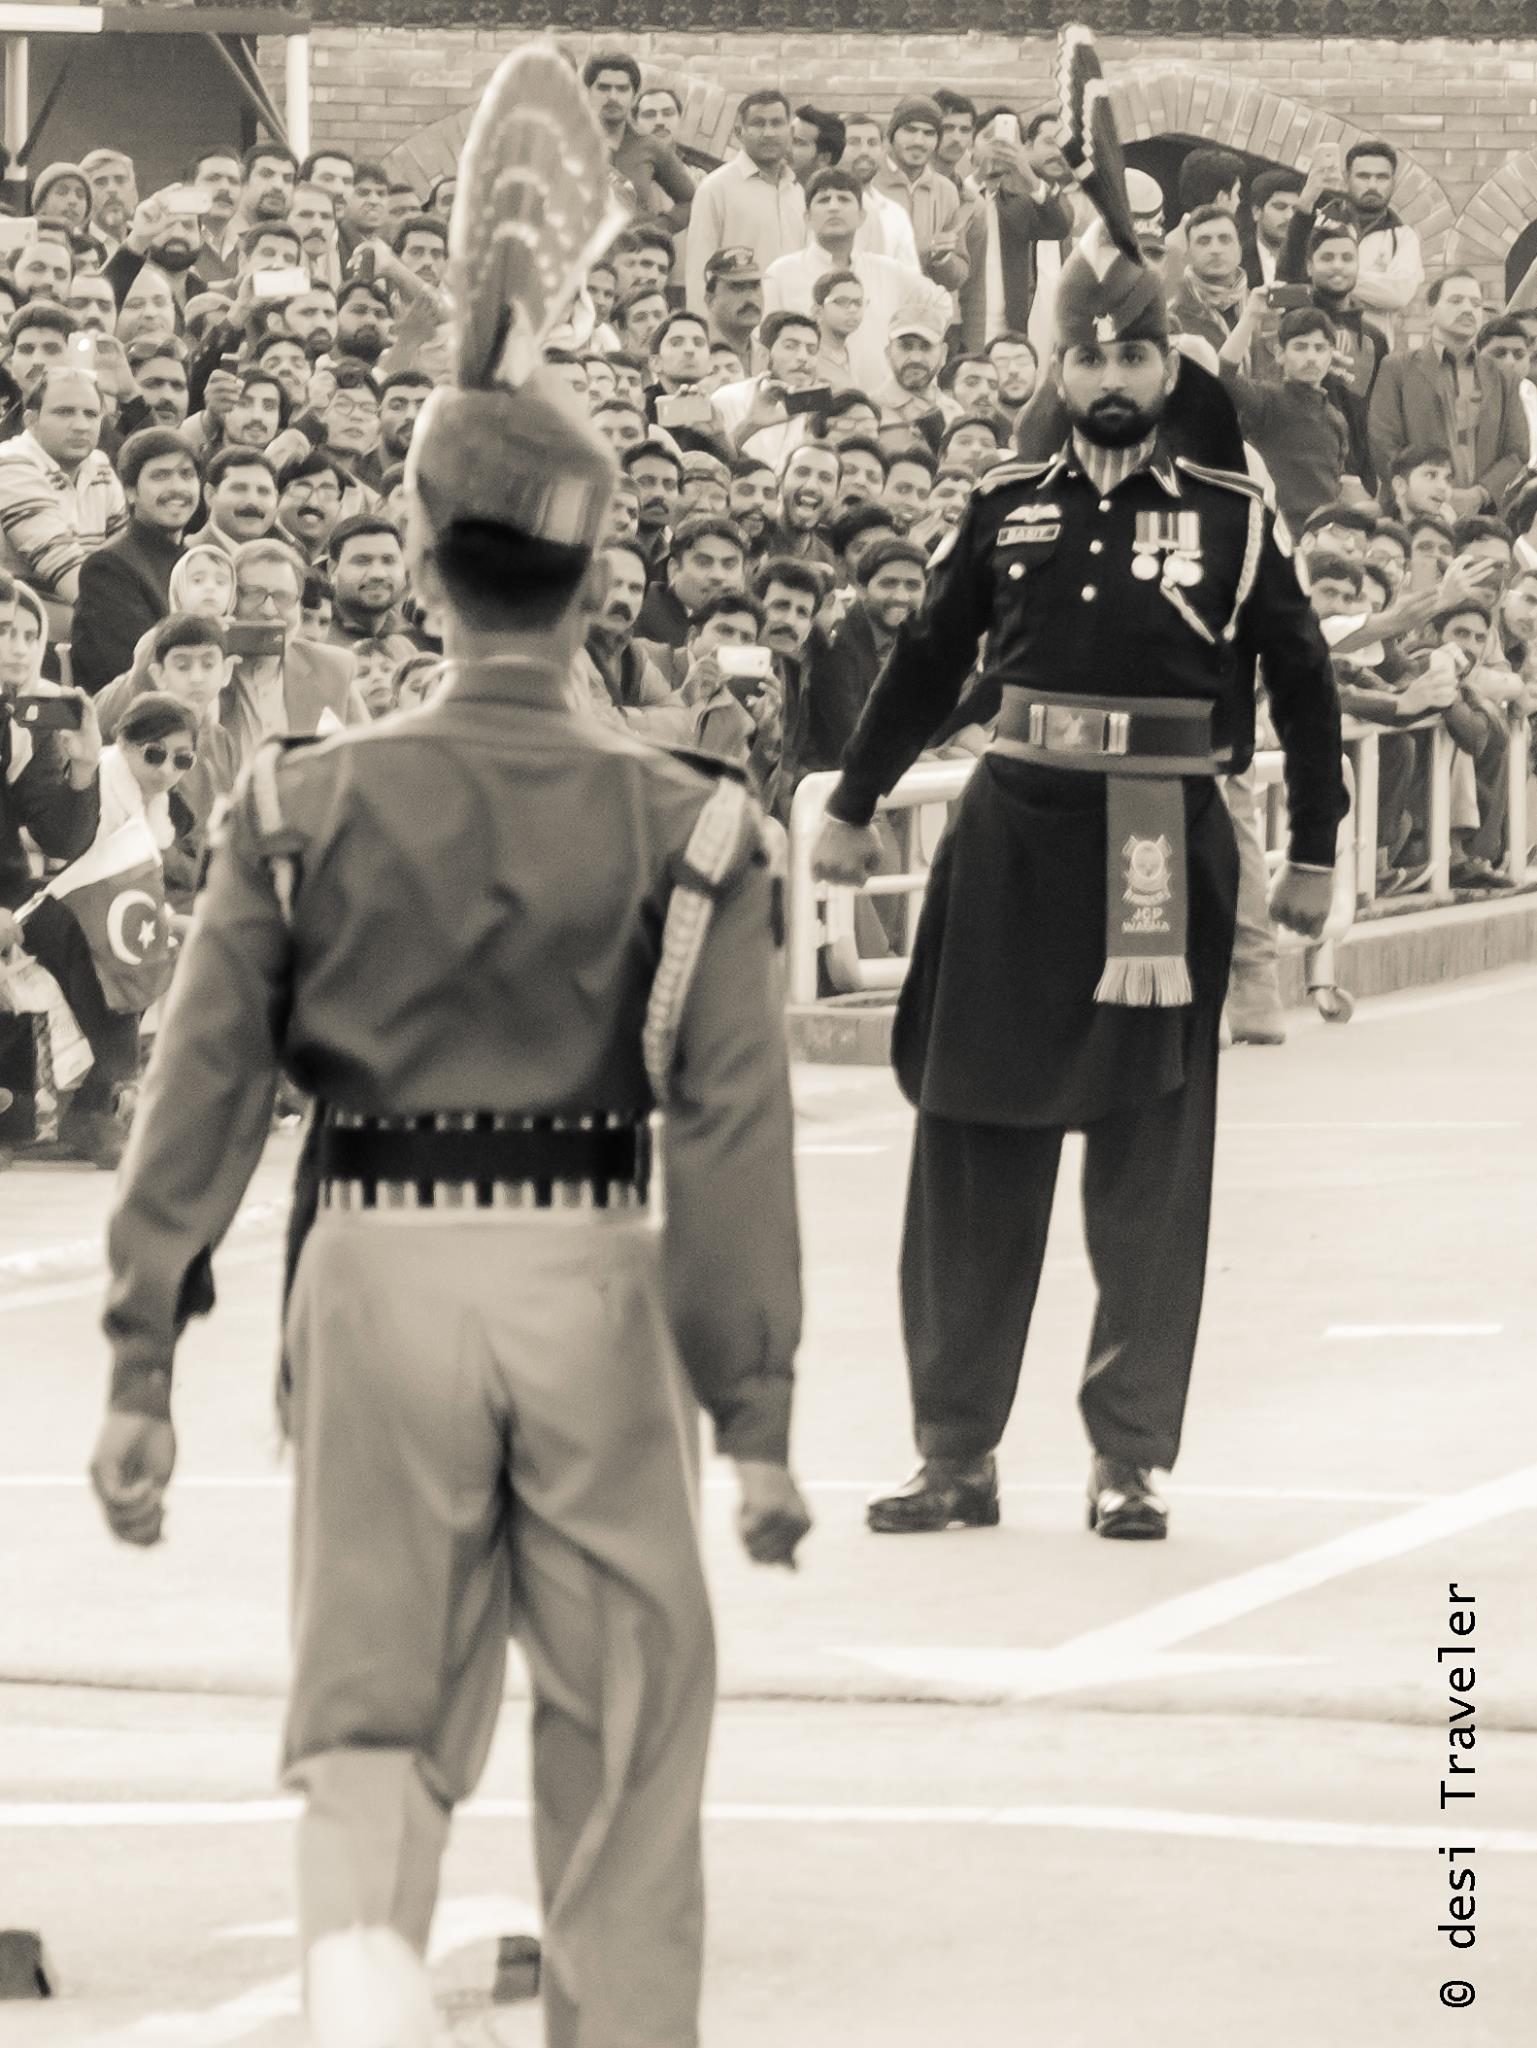 Wagah Border Ceremony Indian and Pakistani Soldiers